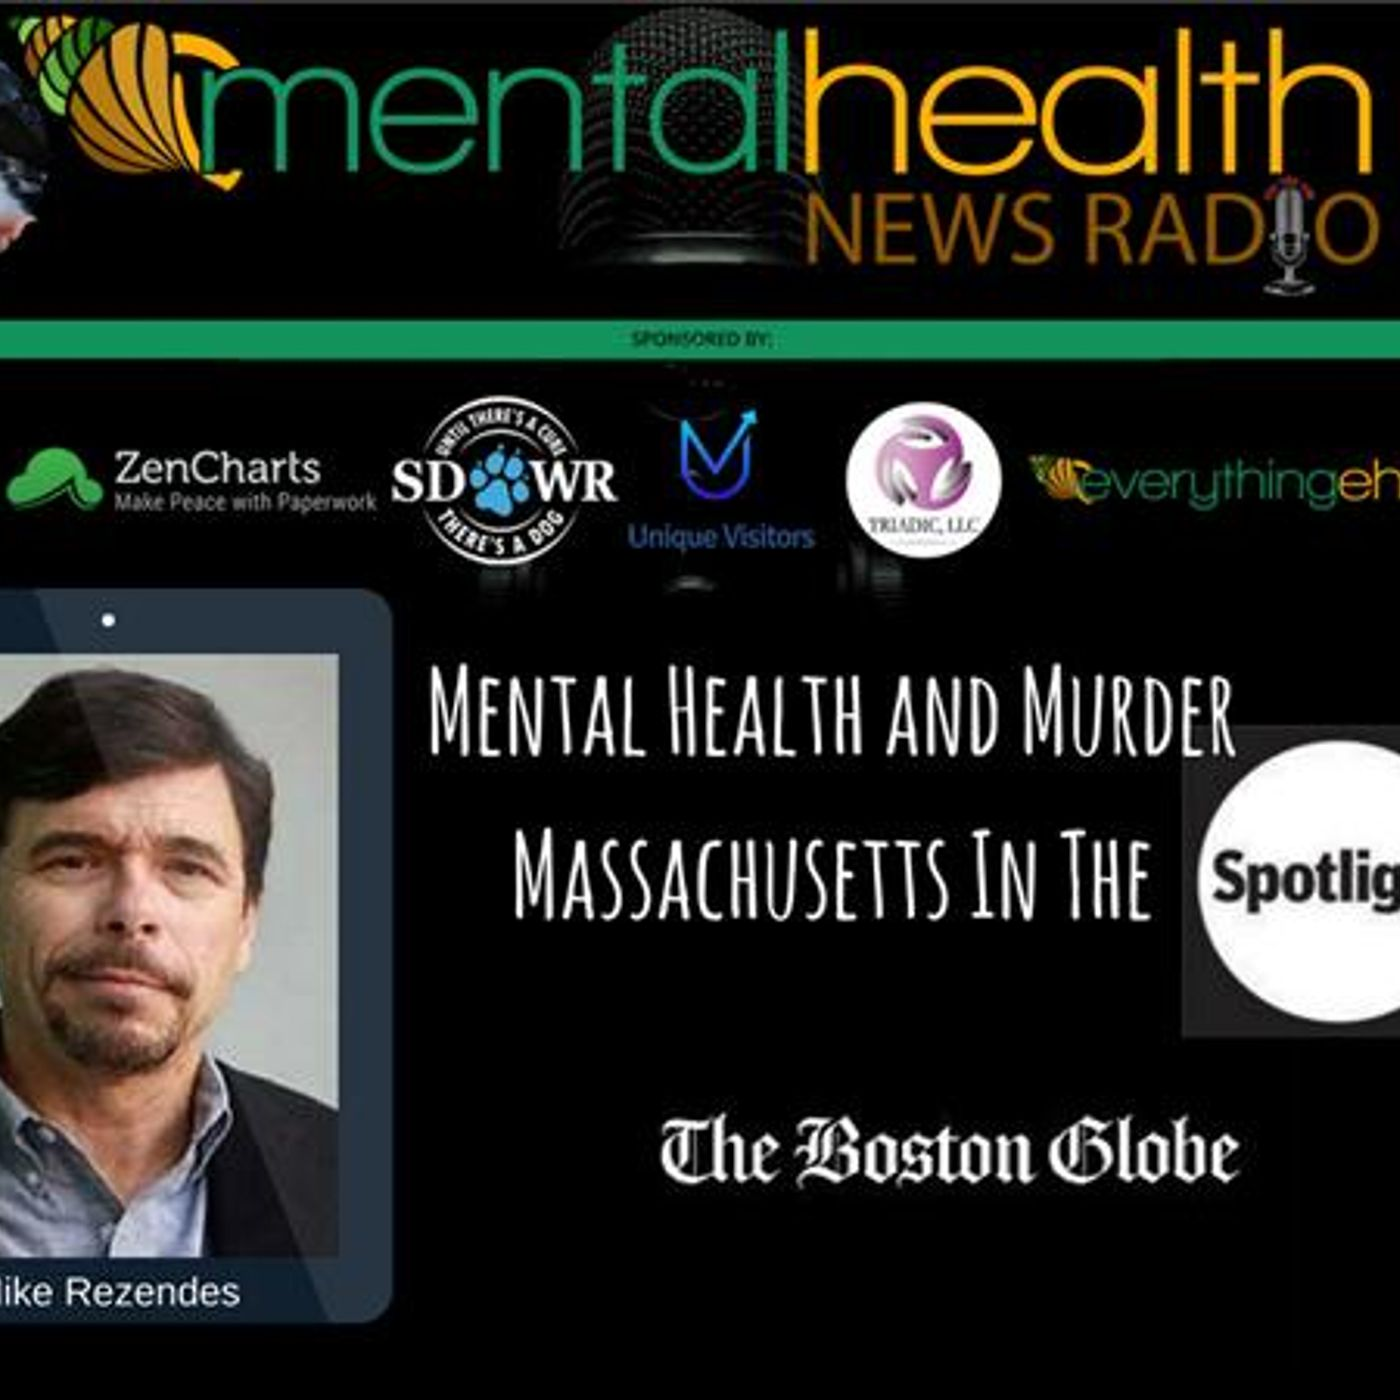 Mental Health News Radio - Mental Health and Murder: Massachusetts In The Spotlight with Michael Rezendes